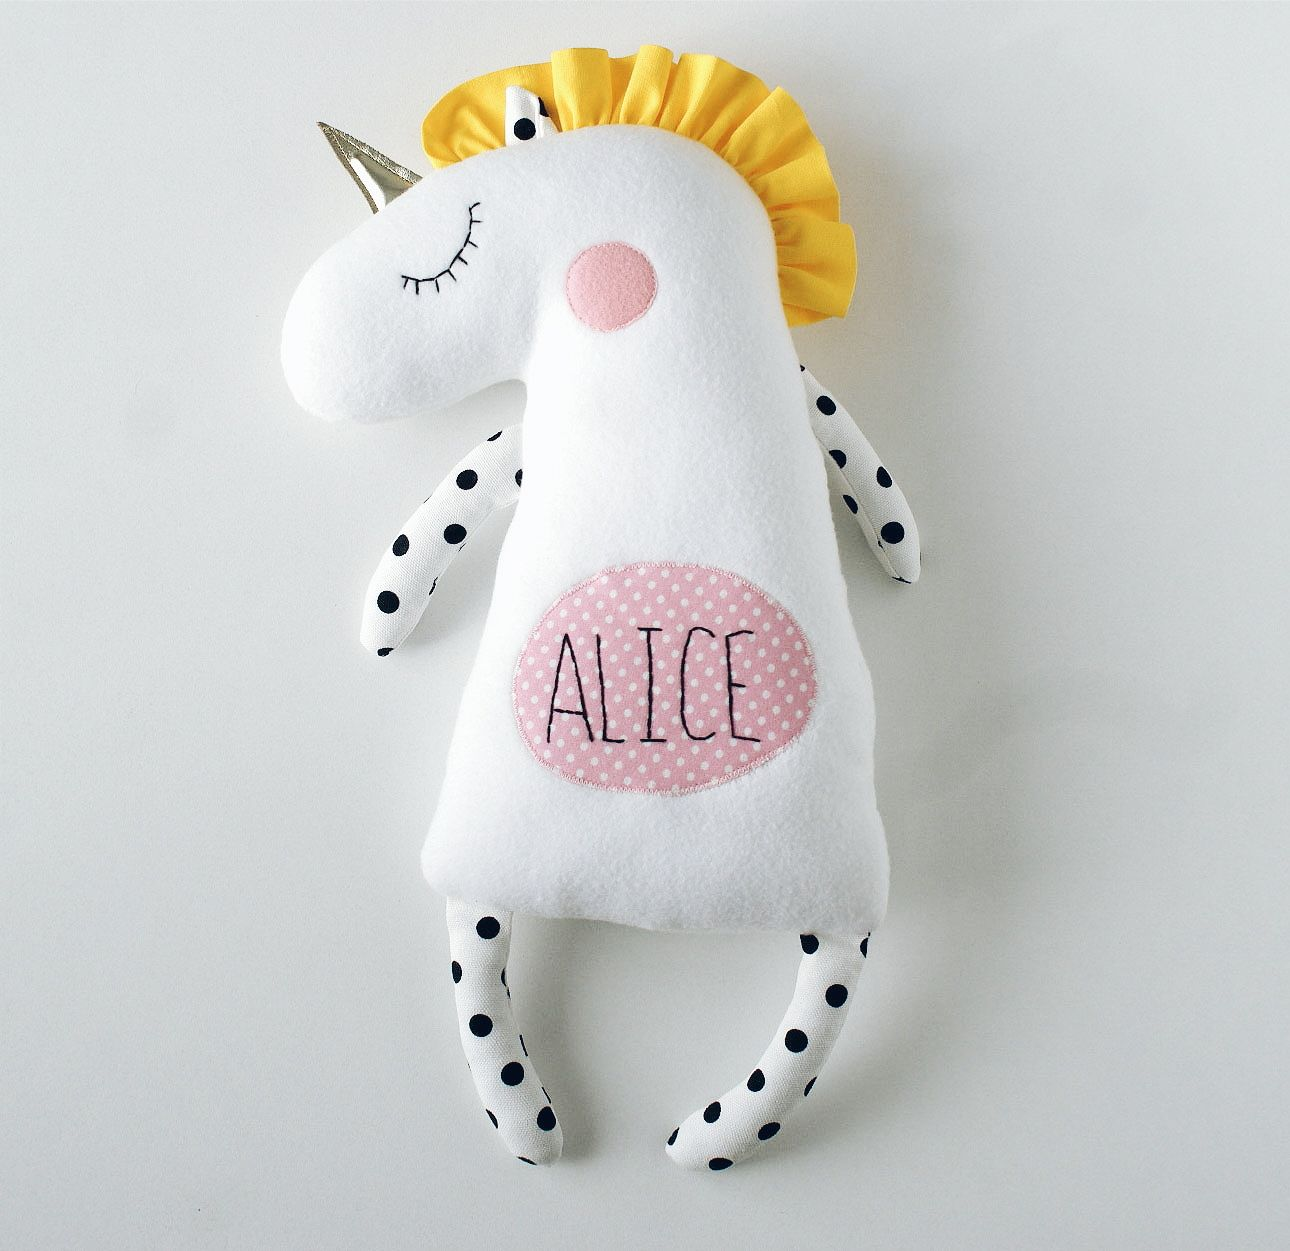 Personalized baby gifts personalized unicorn plush unicorn birthday personalized baby gifts personalized unicorn plush unicorn birthday party unicorn for baby shower unicorn for babies unicorn for girls toys negle Gallery